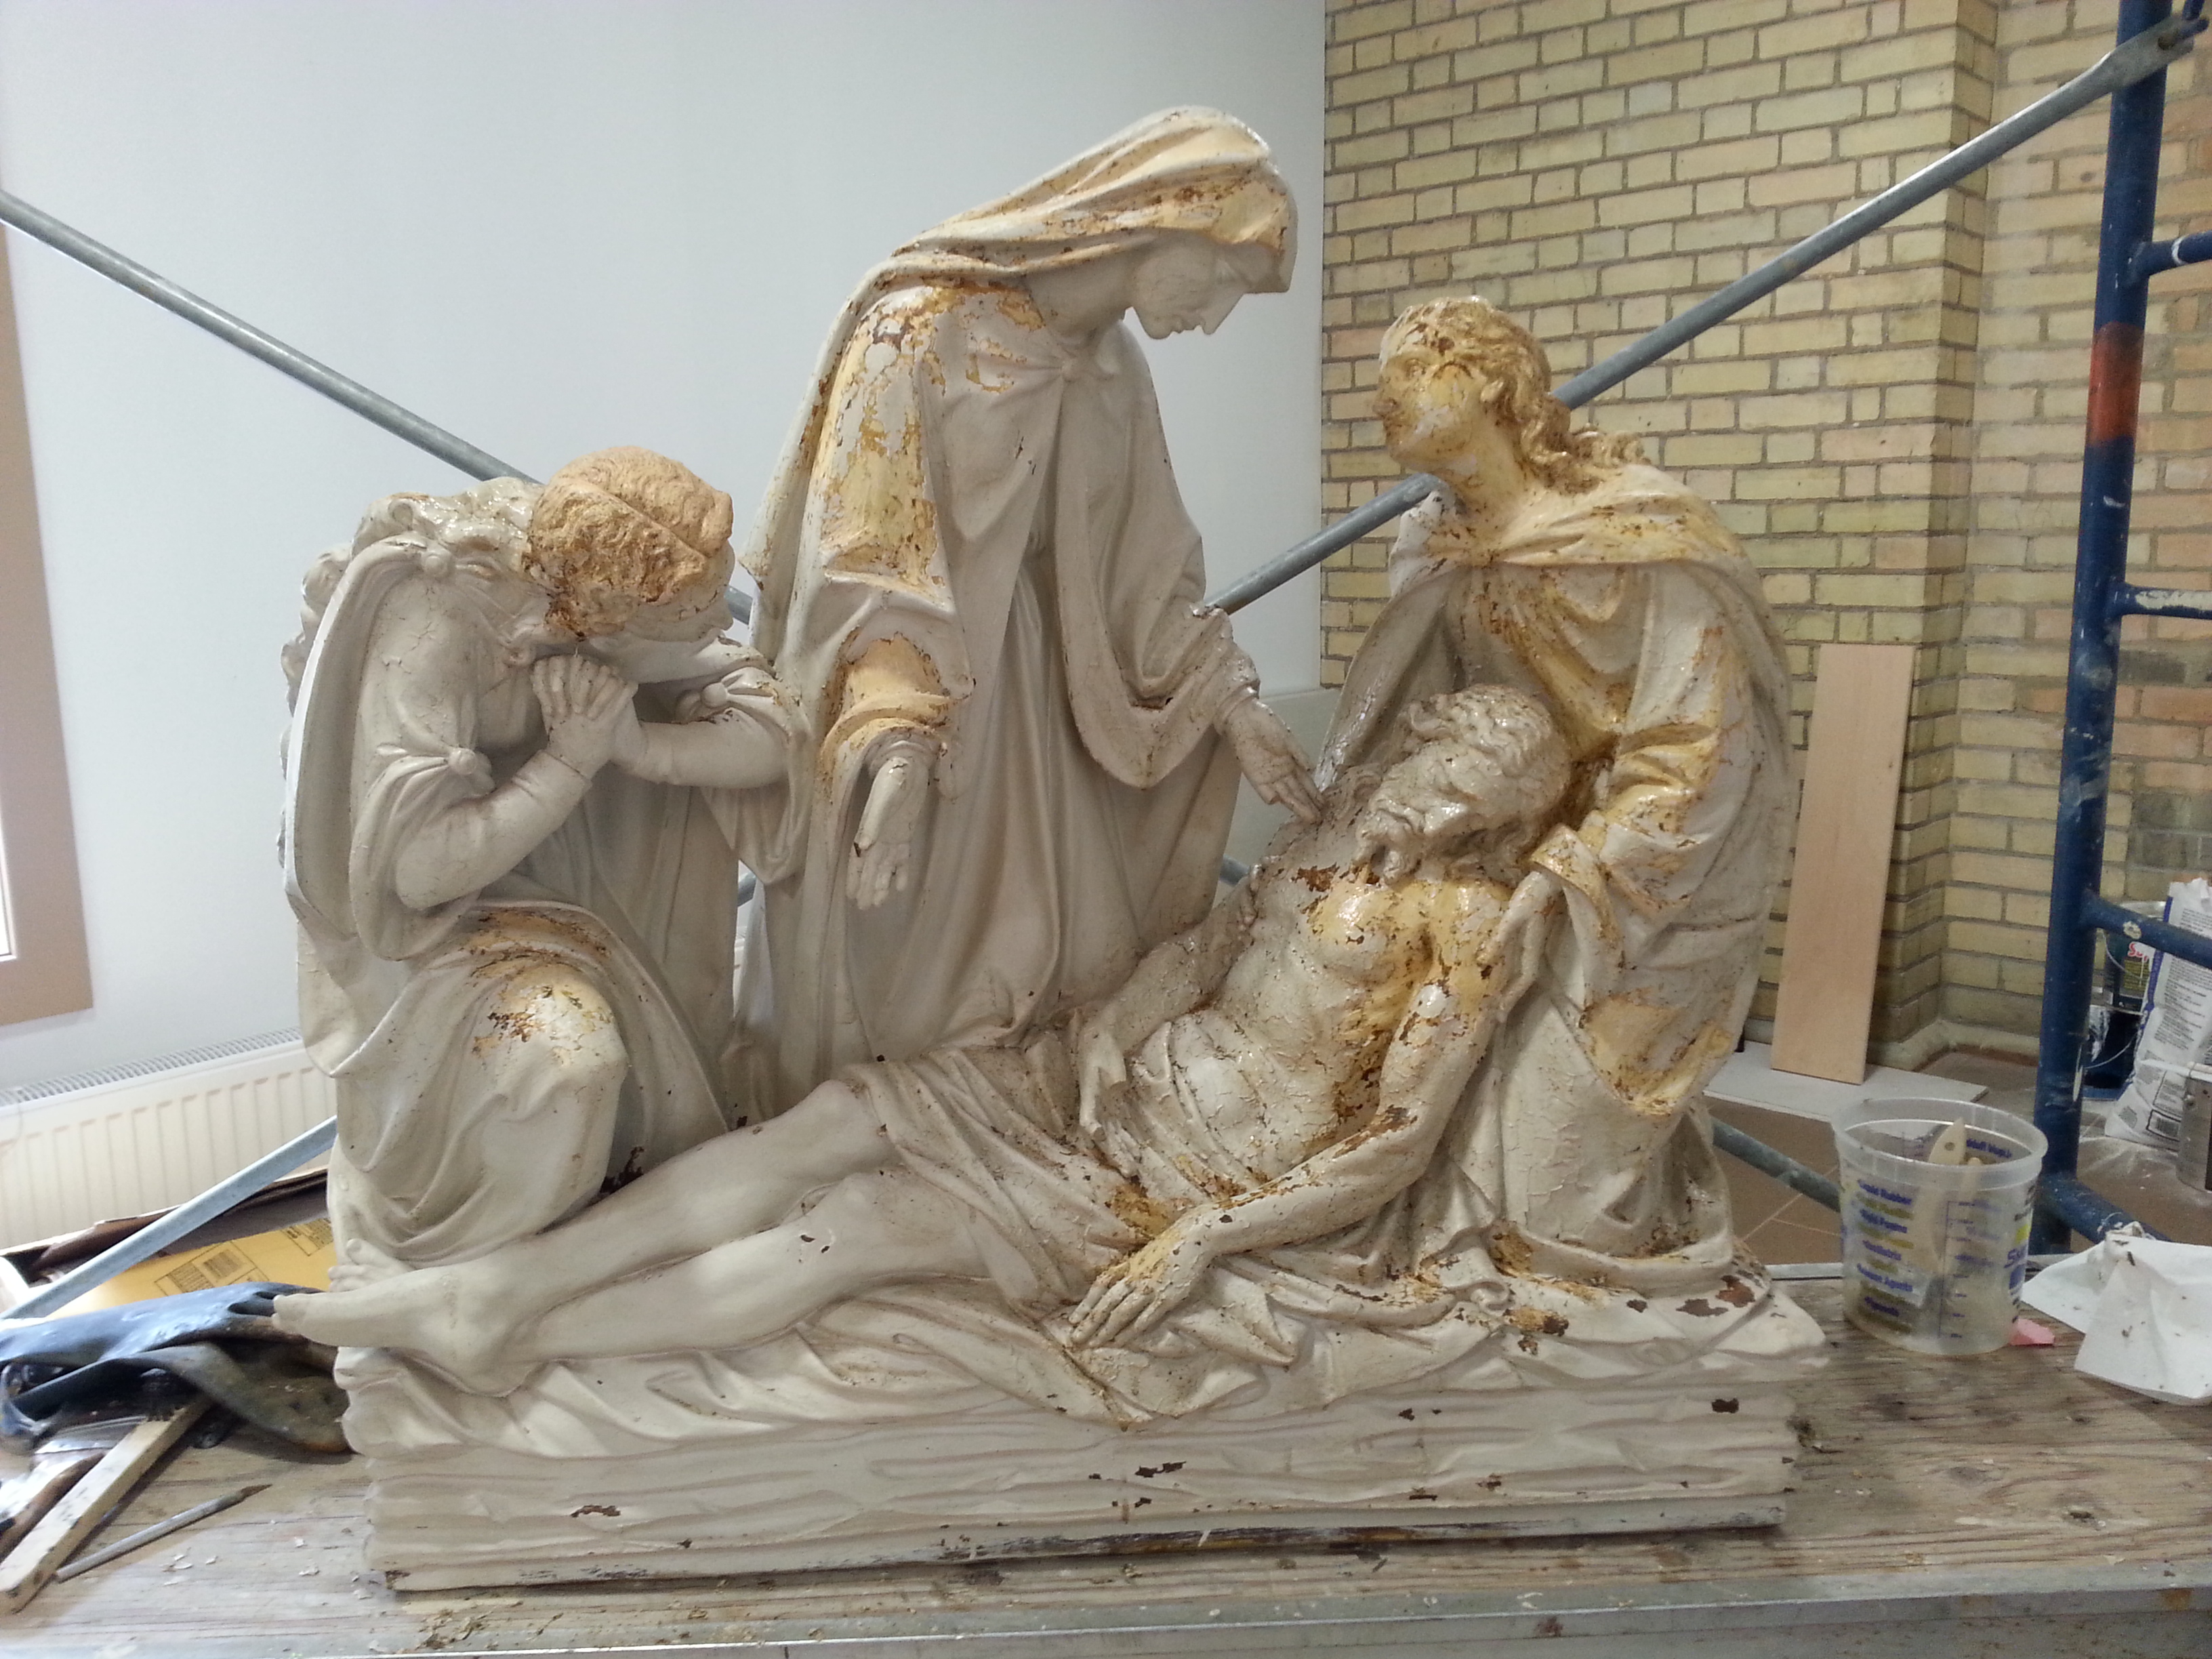 FPDR station of the cross restoration in the works